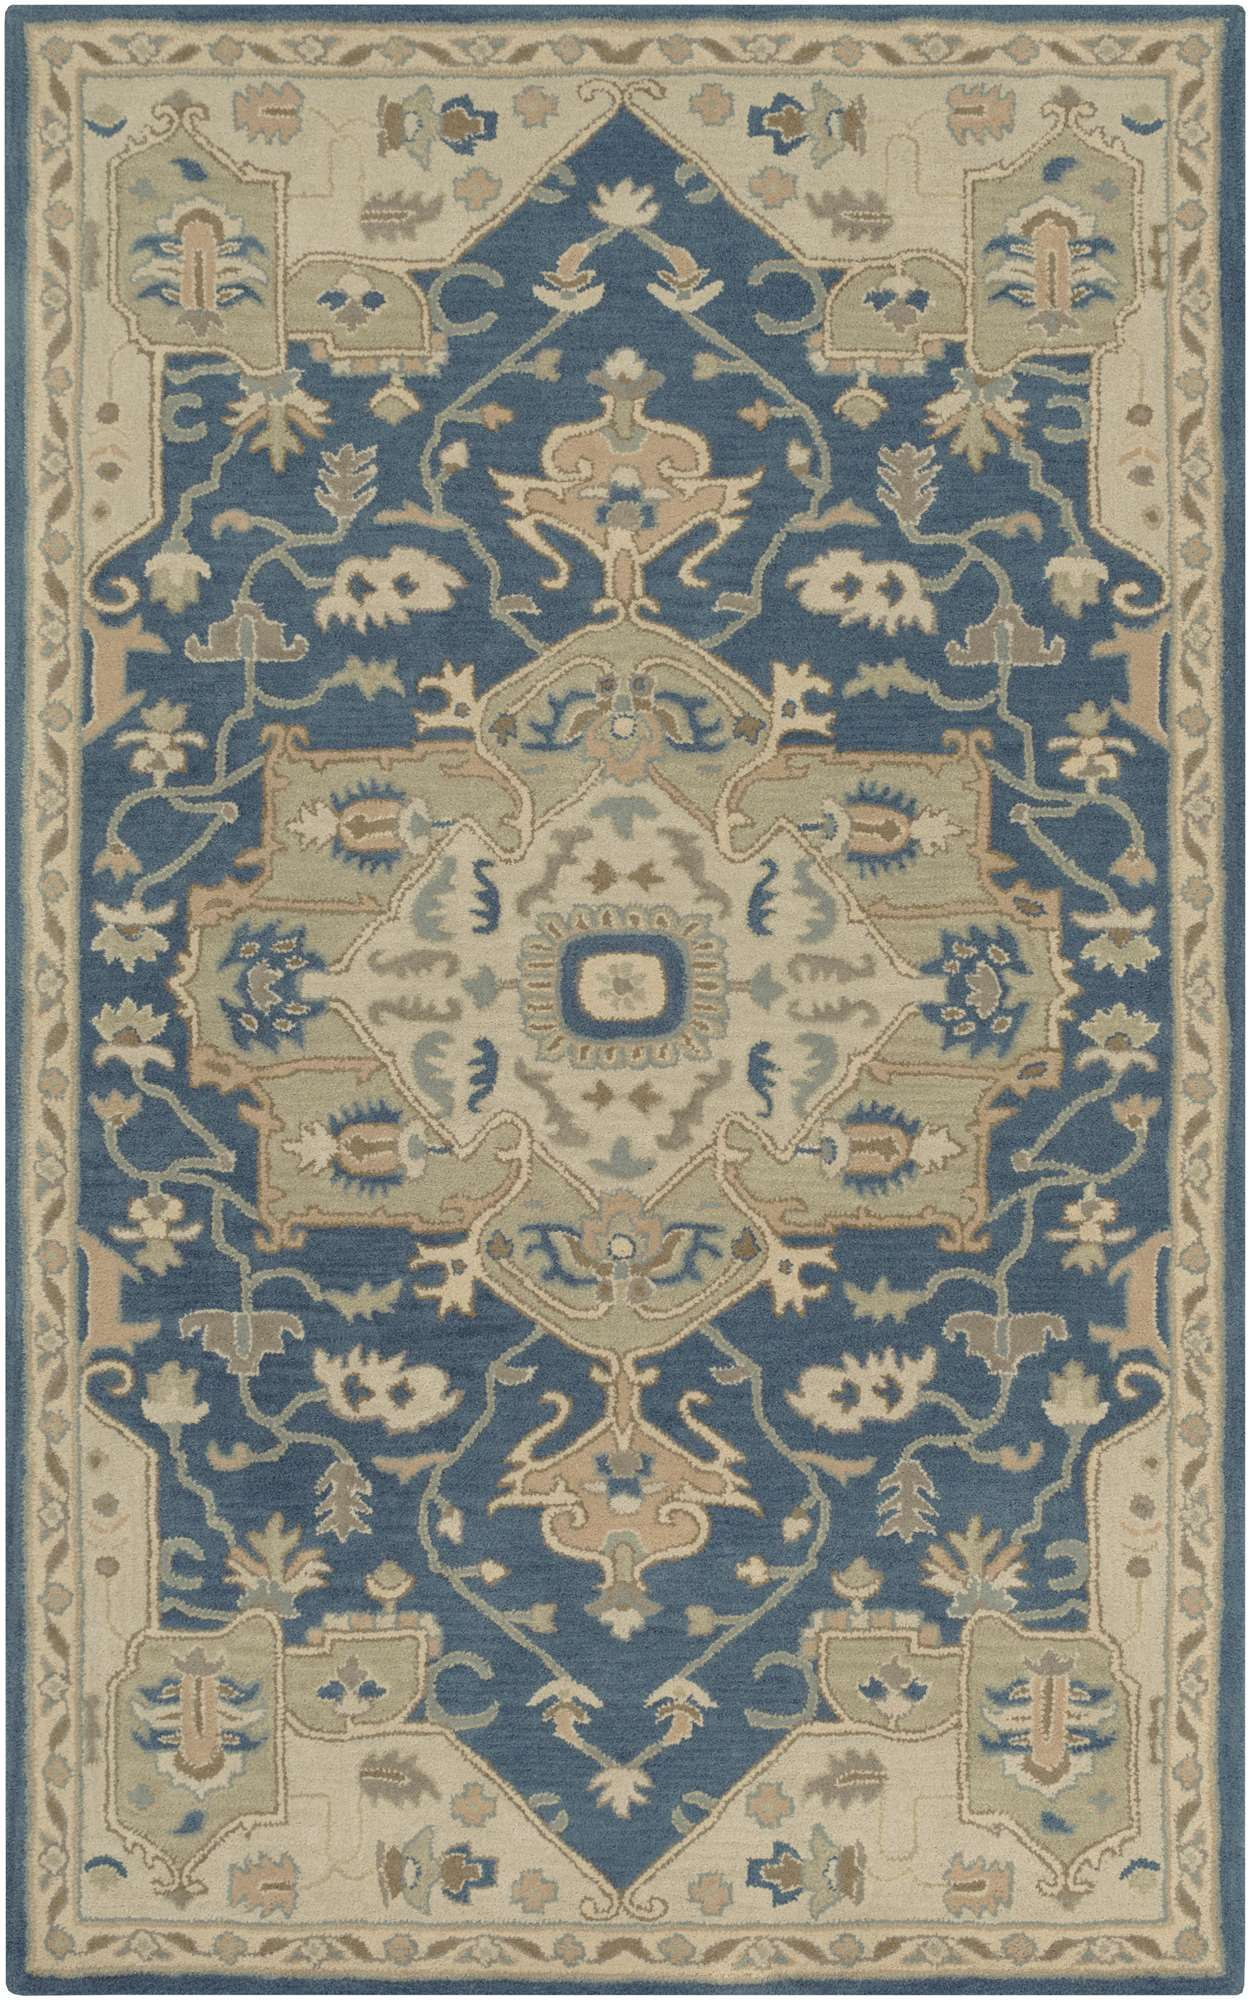 Rugs Usa Area Rugs In Many Styles Including Contemporary Braided Outdoor And Flokati Shag Rugs Buy Rugs Navy Area Rug Hand Tufted Rugs Area Rugs